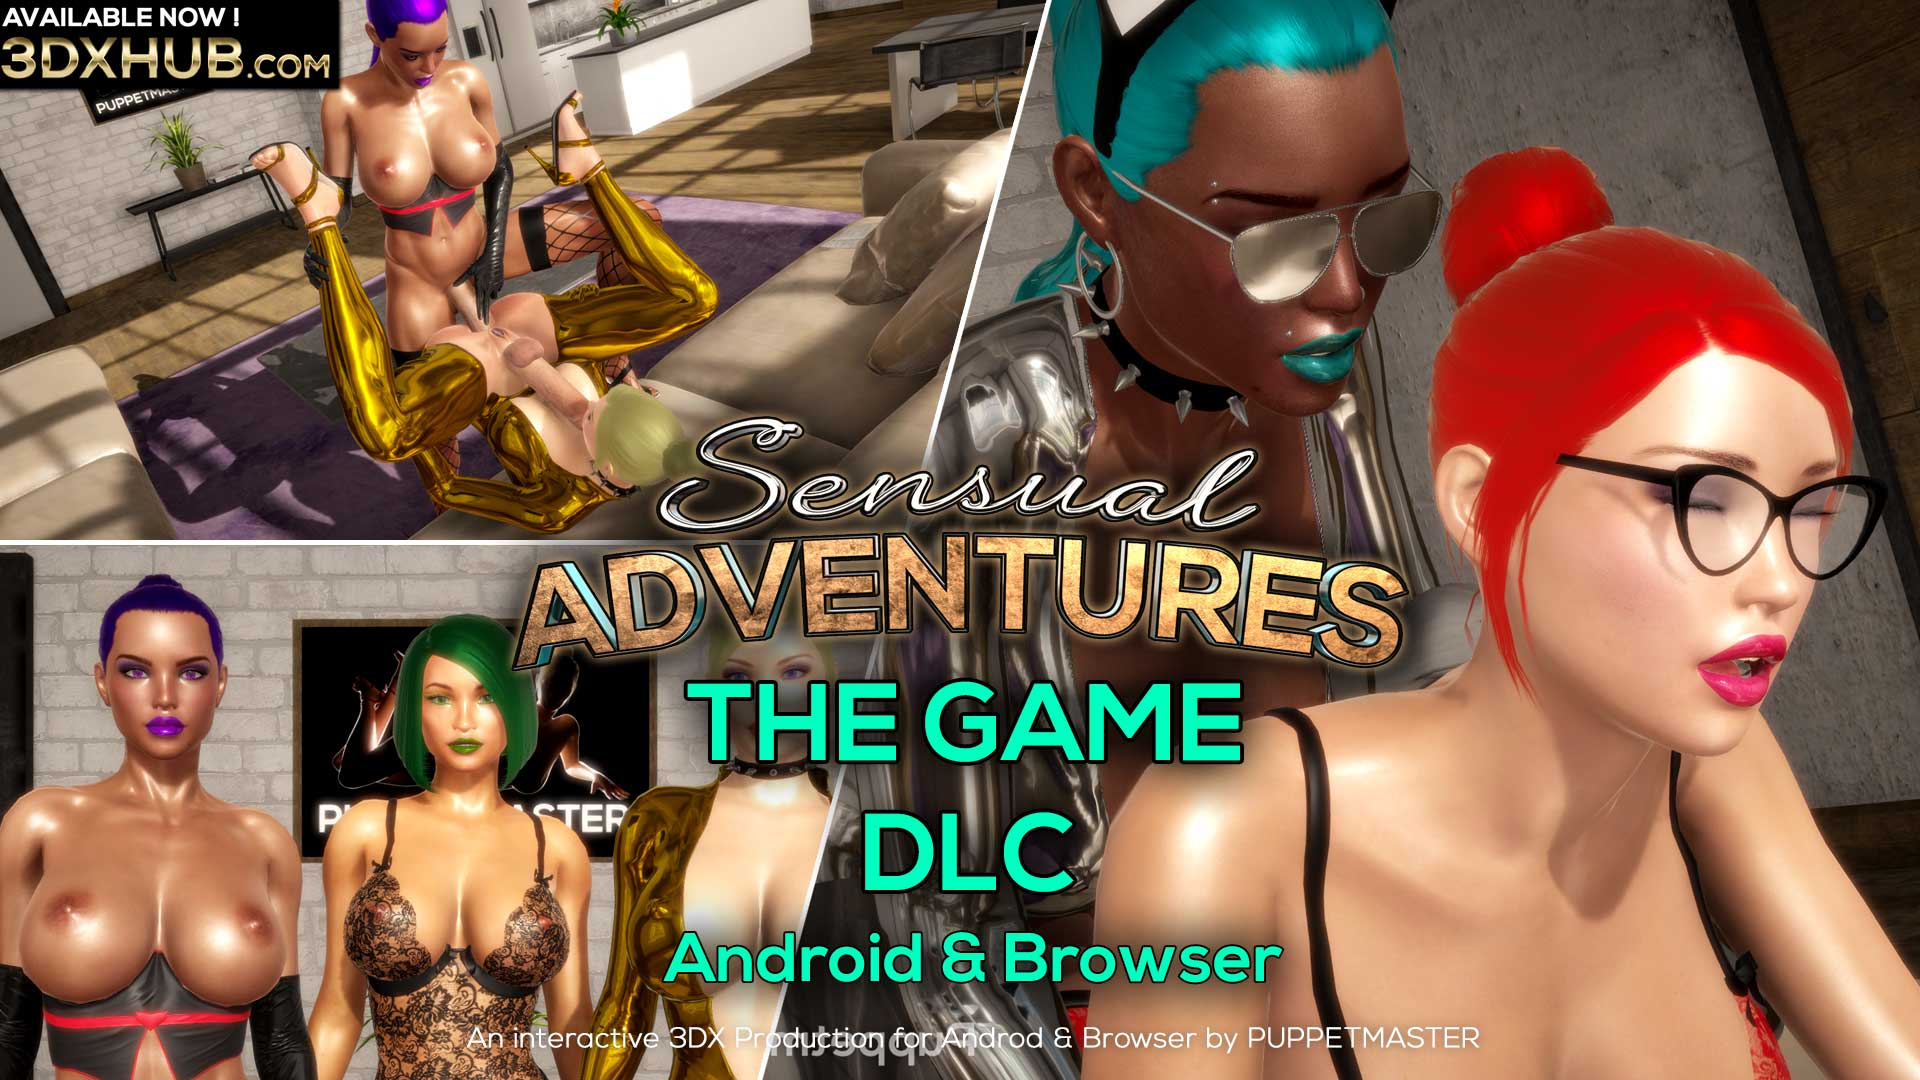 Sensual Adventures - The Game DLC (Android & Browser)